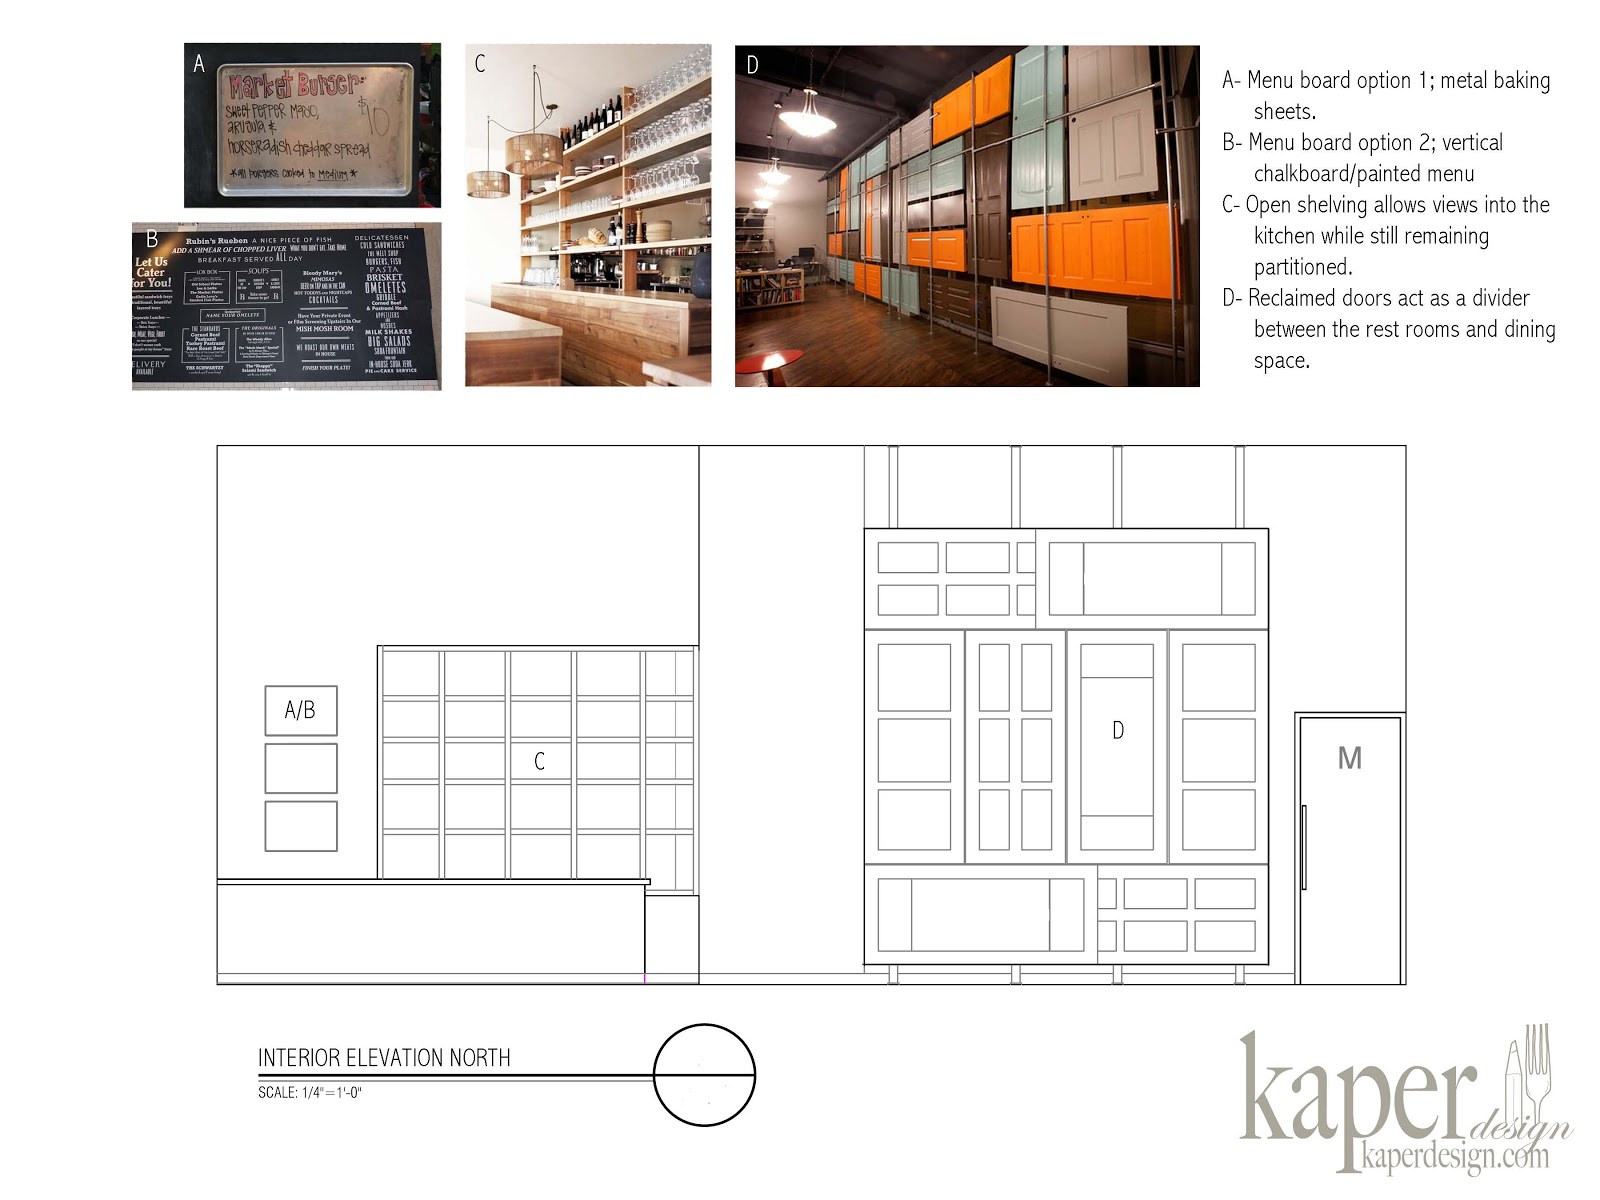 Kaper Design Restaurant Hospitality Design Inspiration Completed Projects